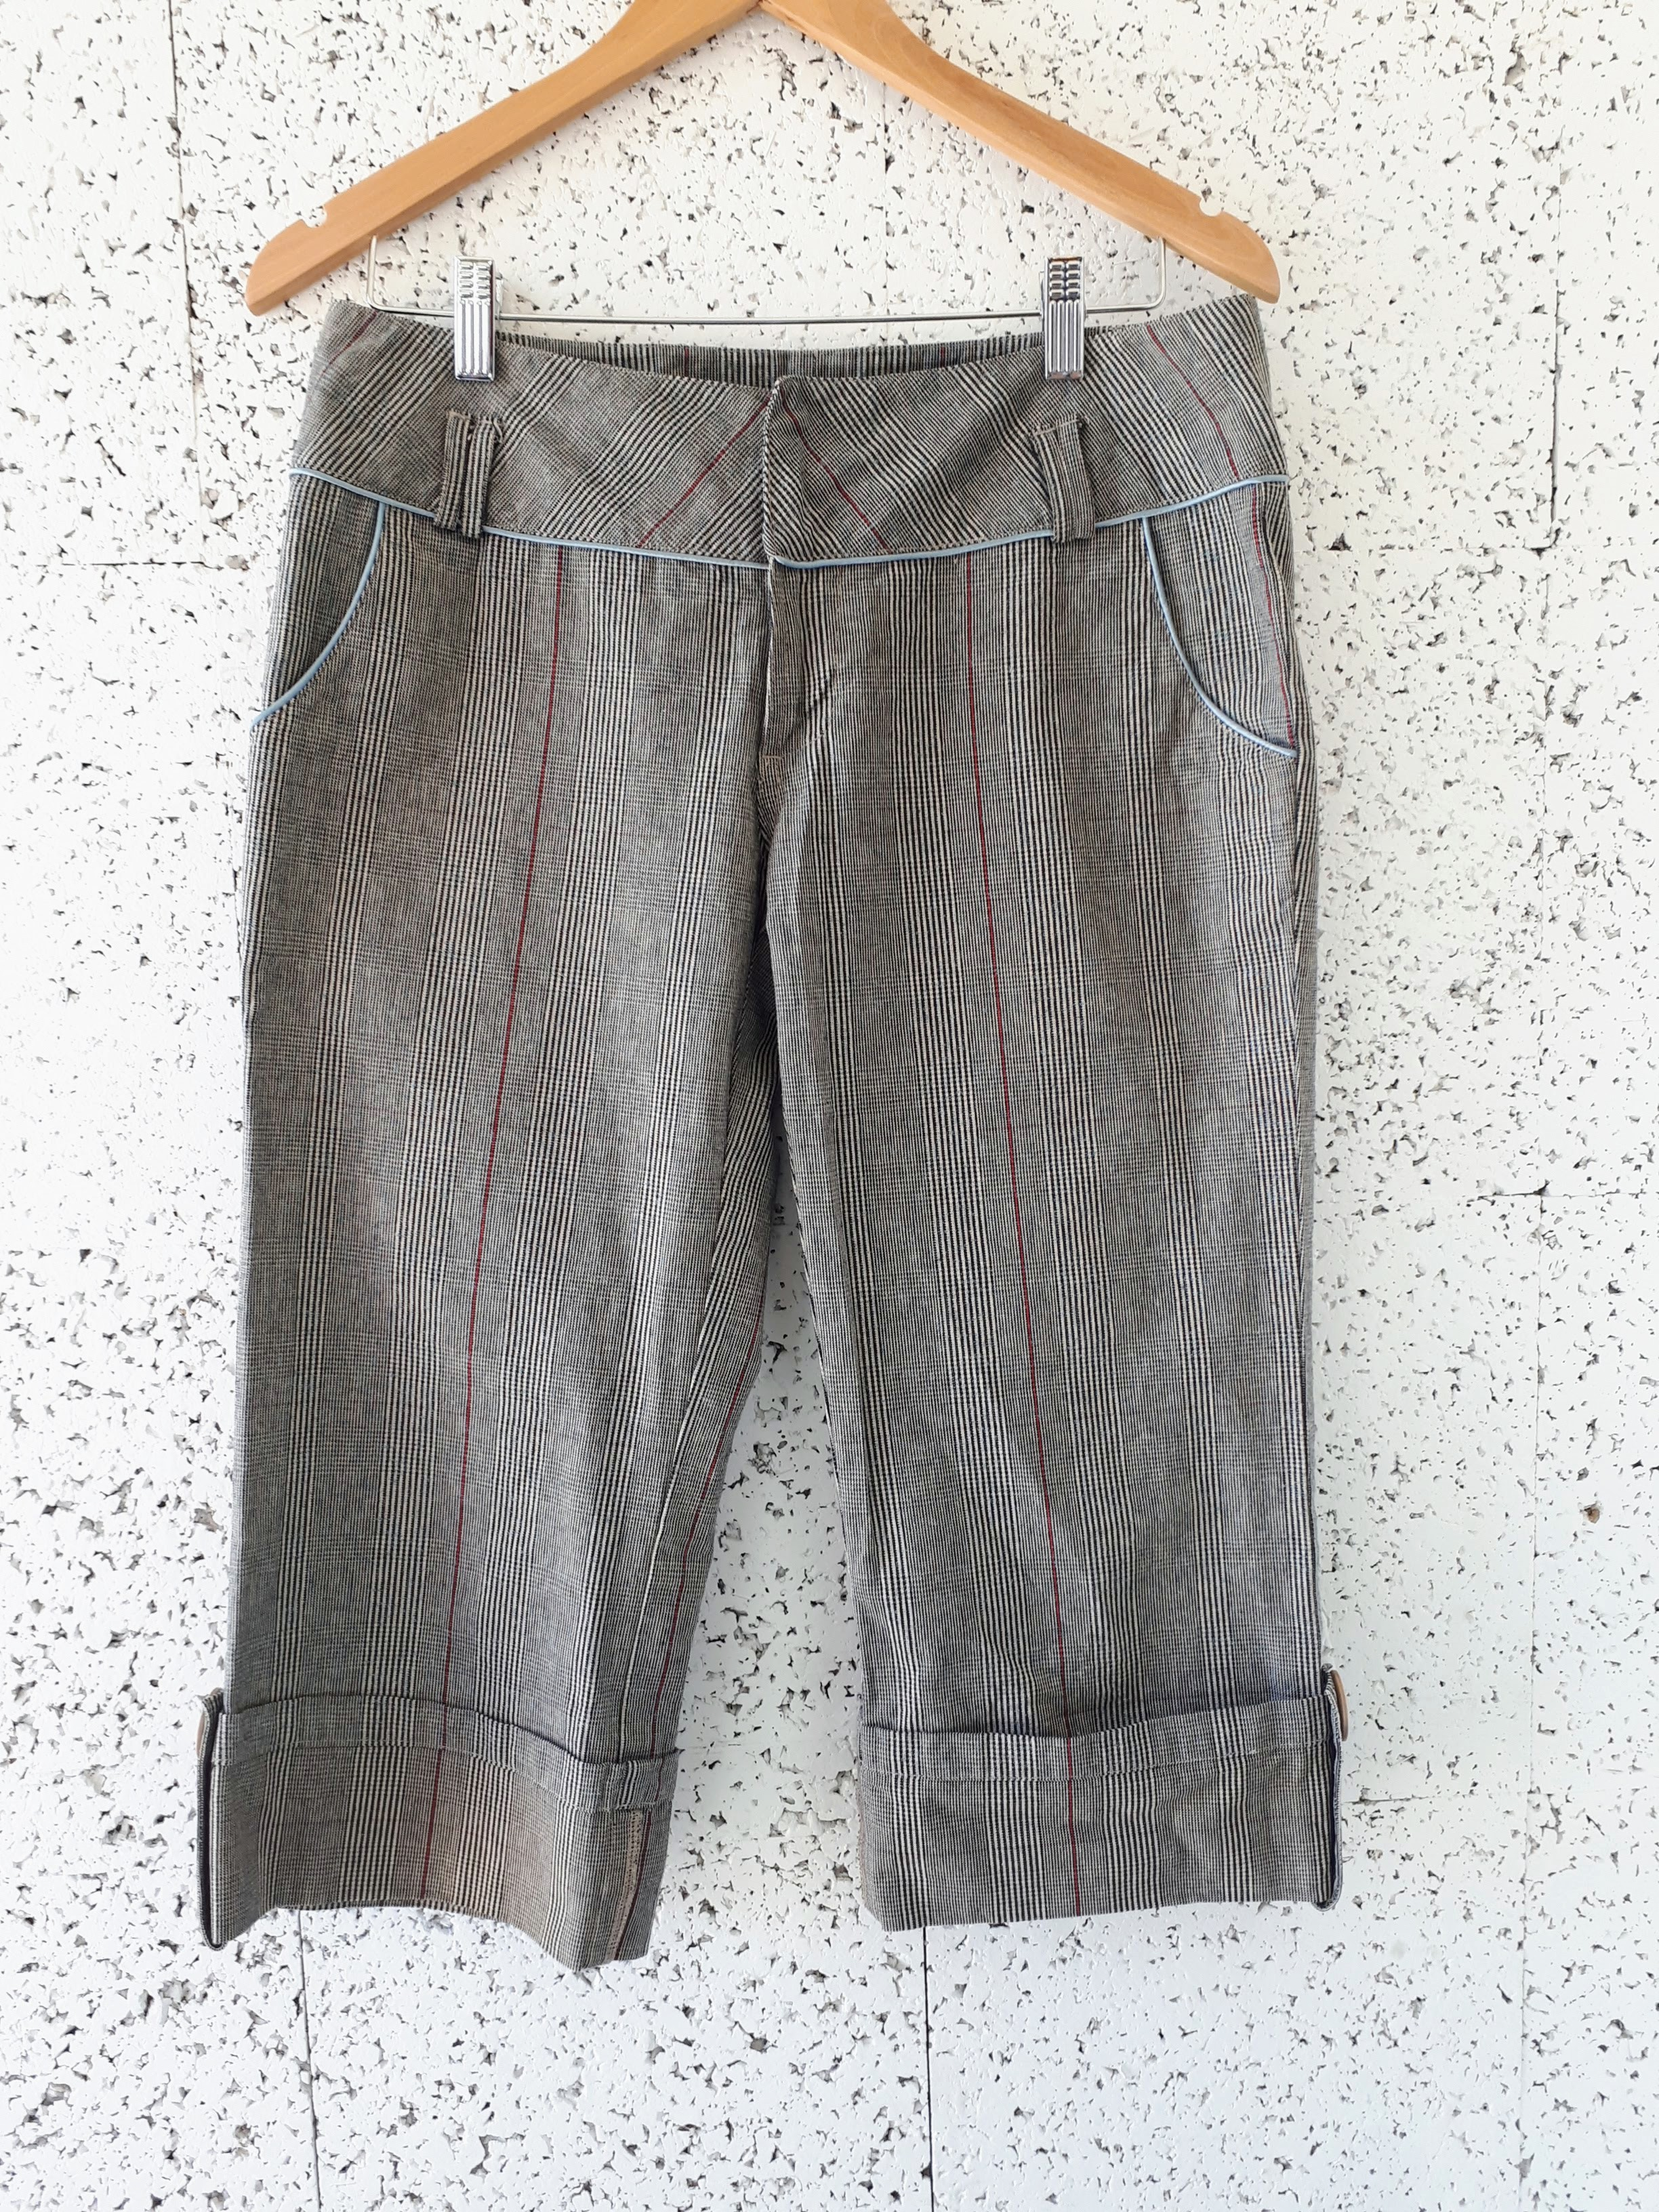 Gentle Fawn pants; Size 8, $28